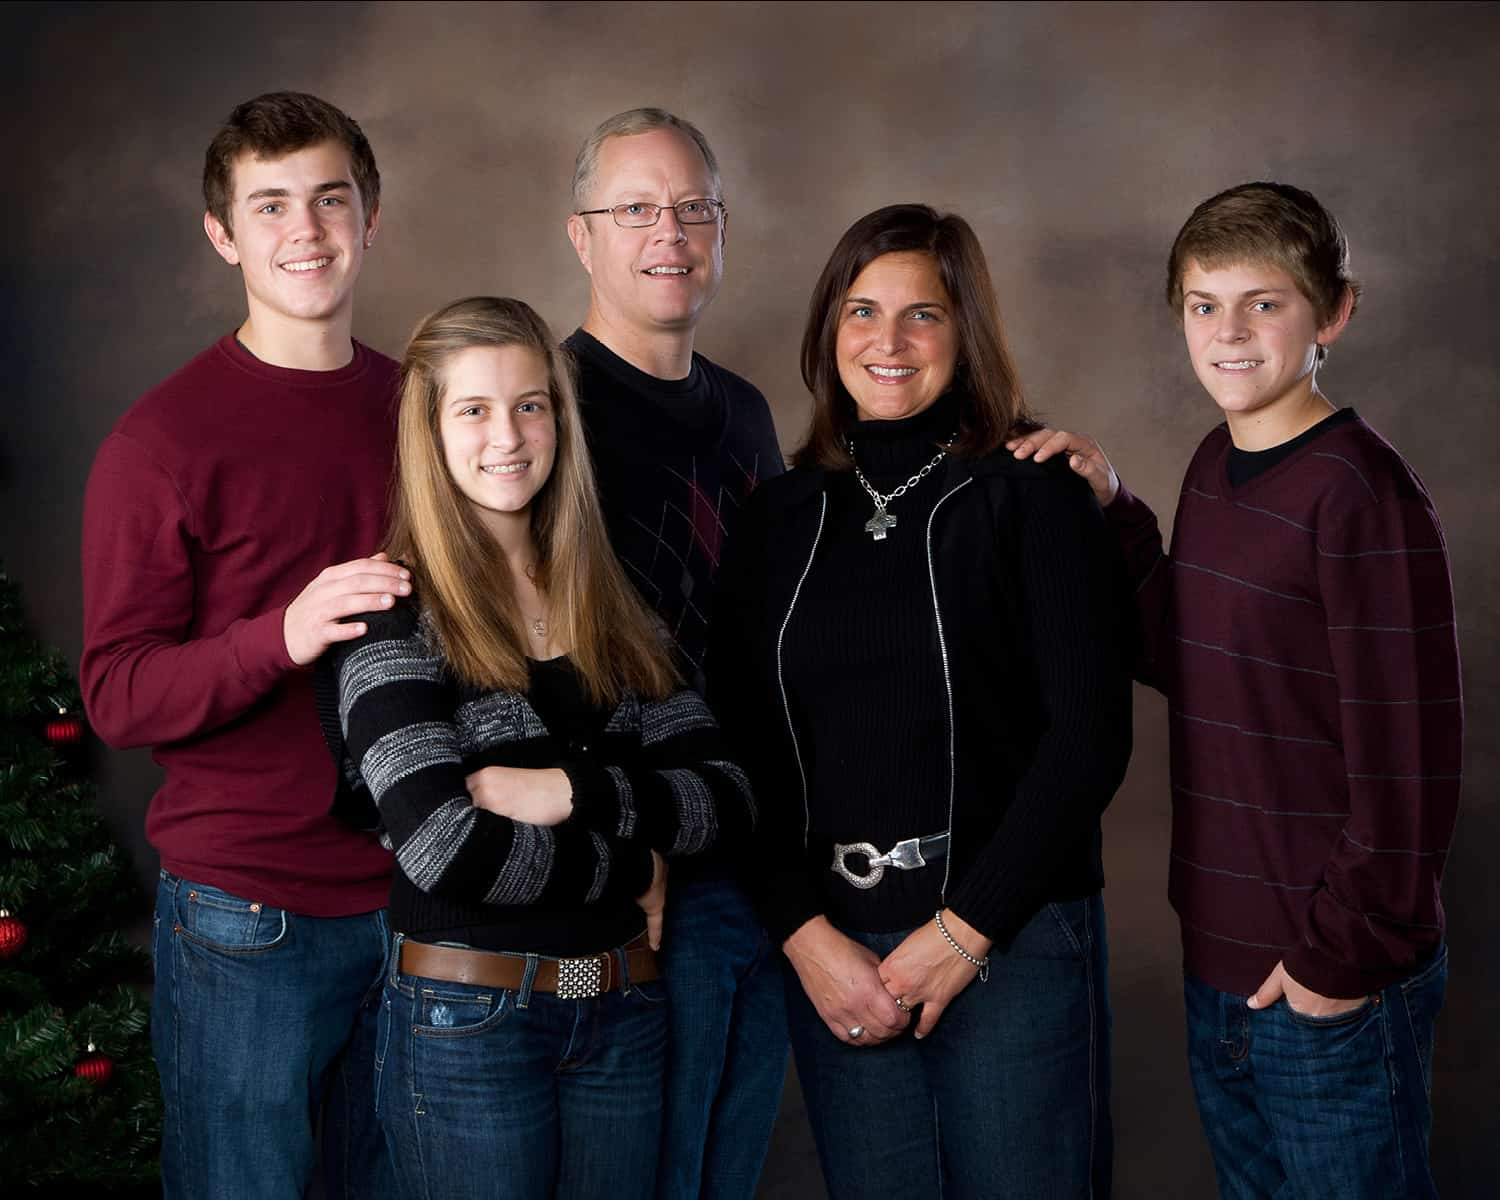 nfocus photos family portraits in Crystal Lake, Illinois